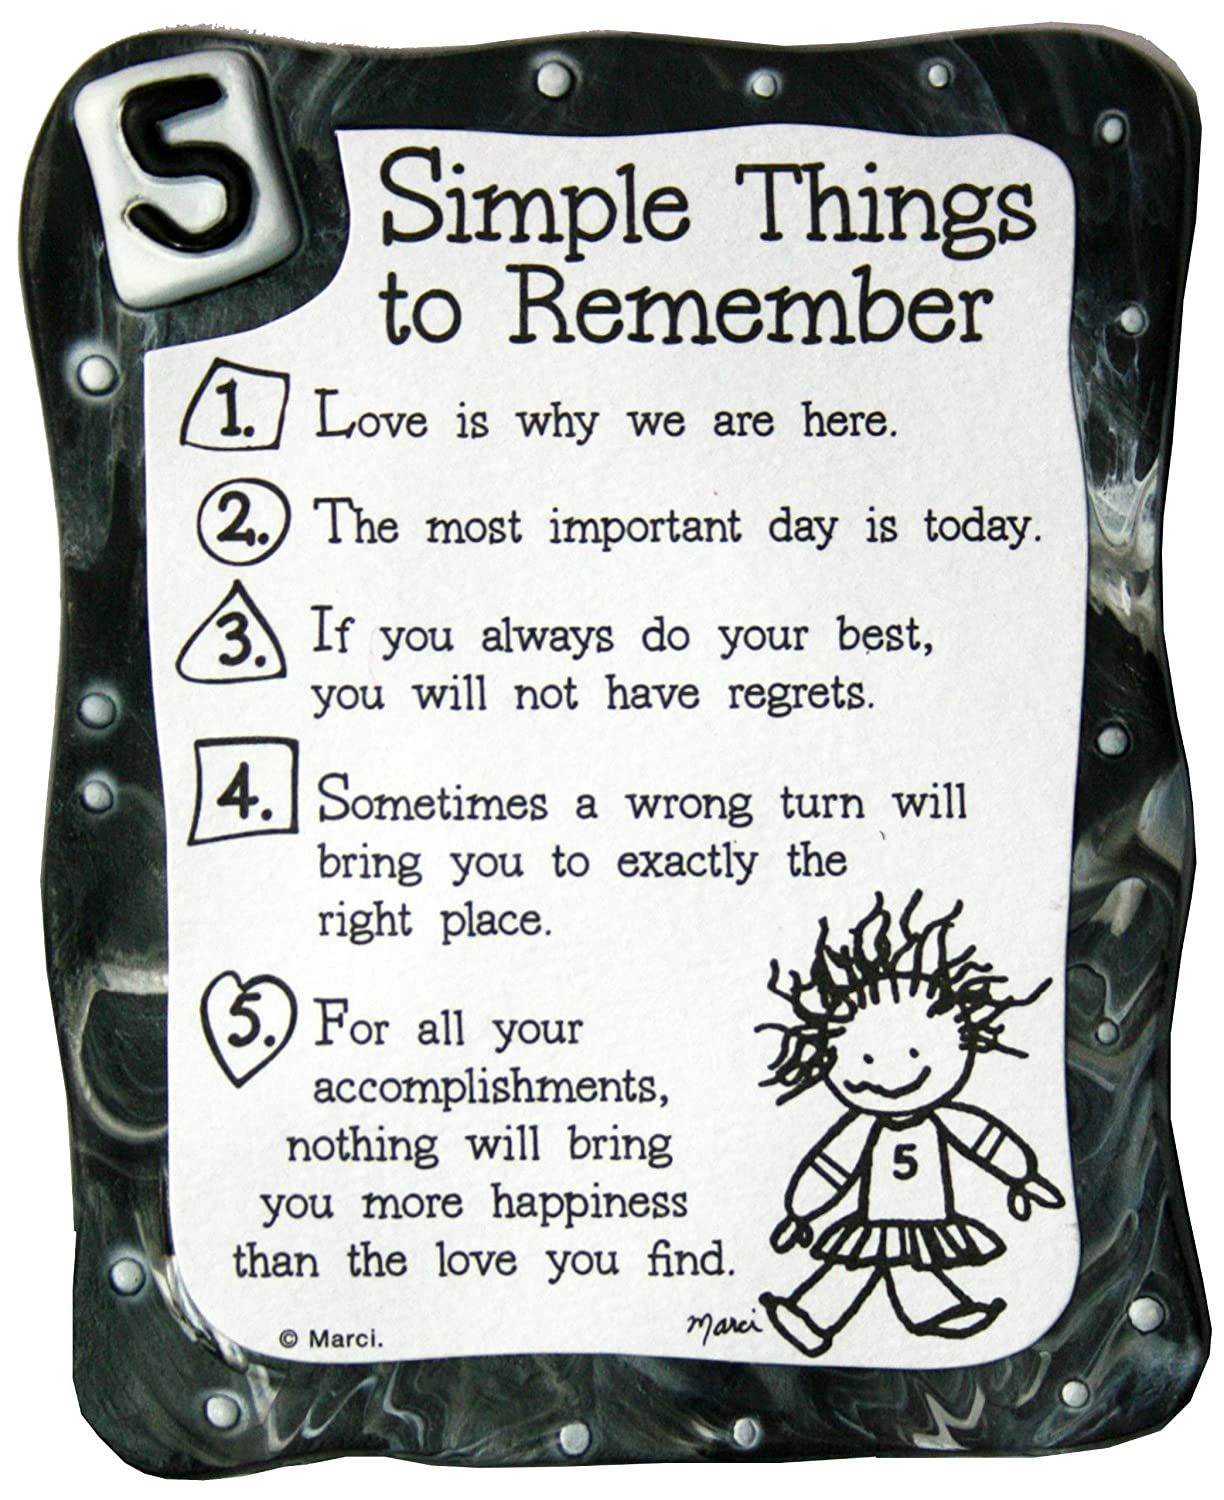 Sculpted Magnet Five Simple Things to Remember 3.0 x 3.5